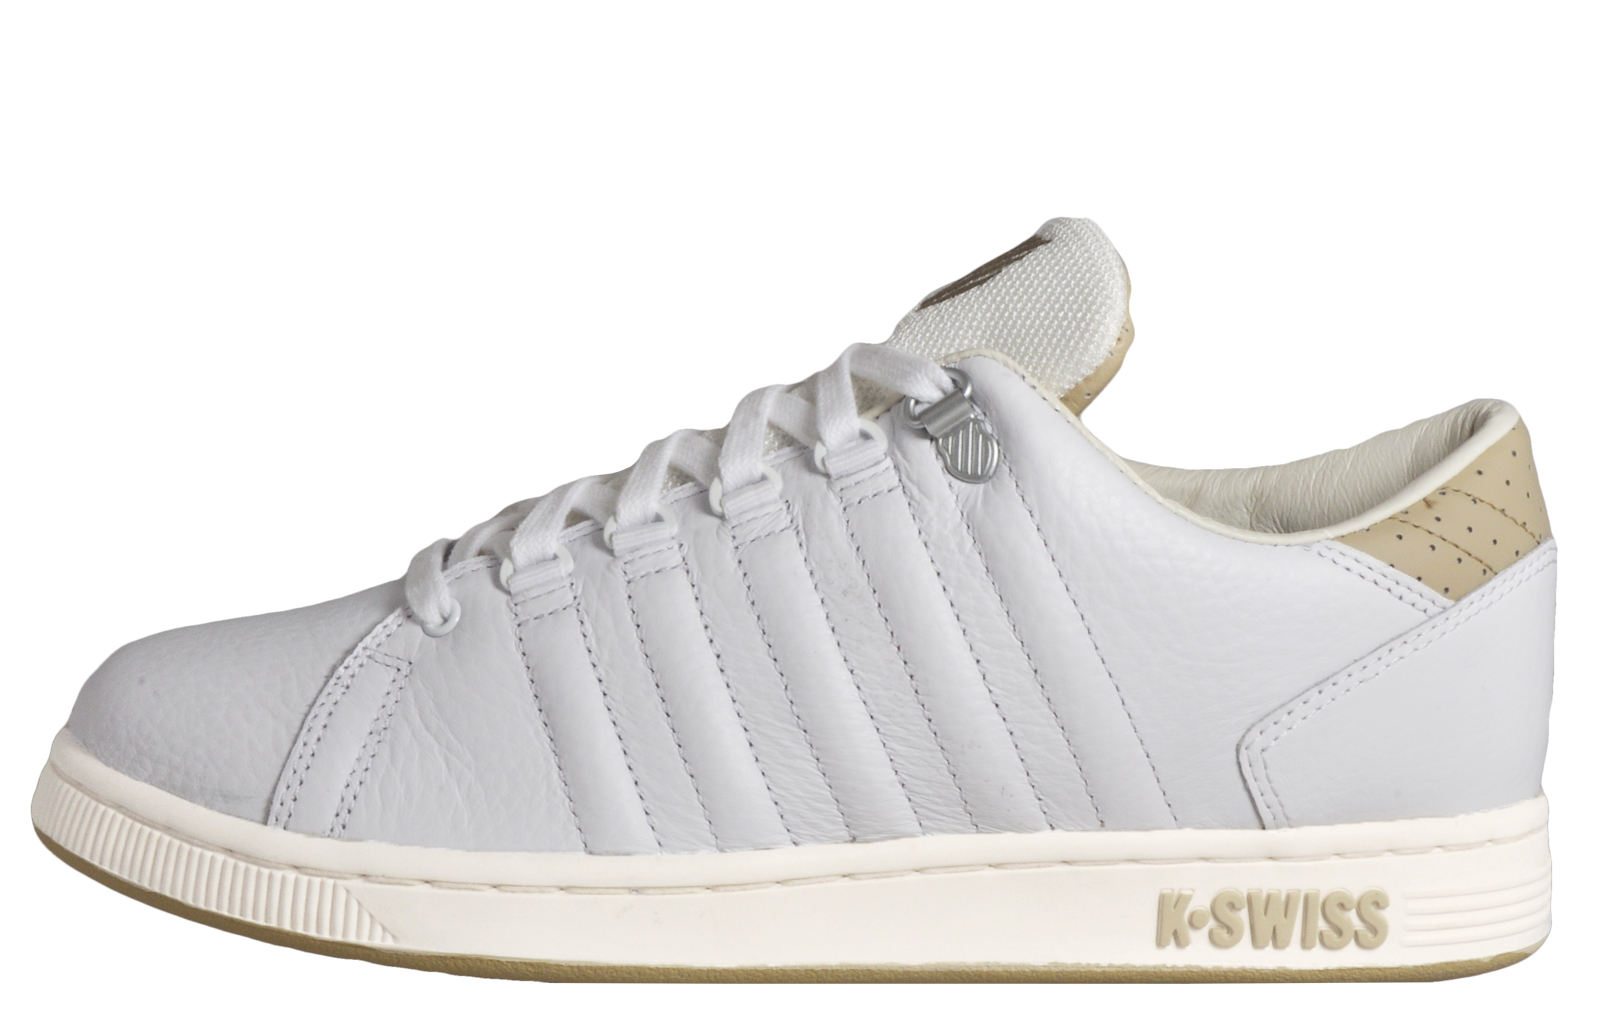 k swiss shoes bahrain specialist map of europe